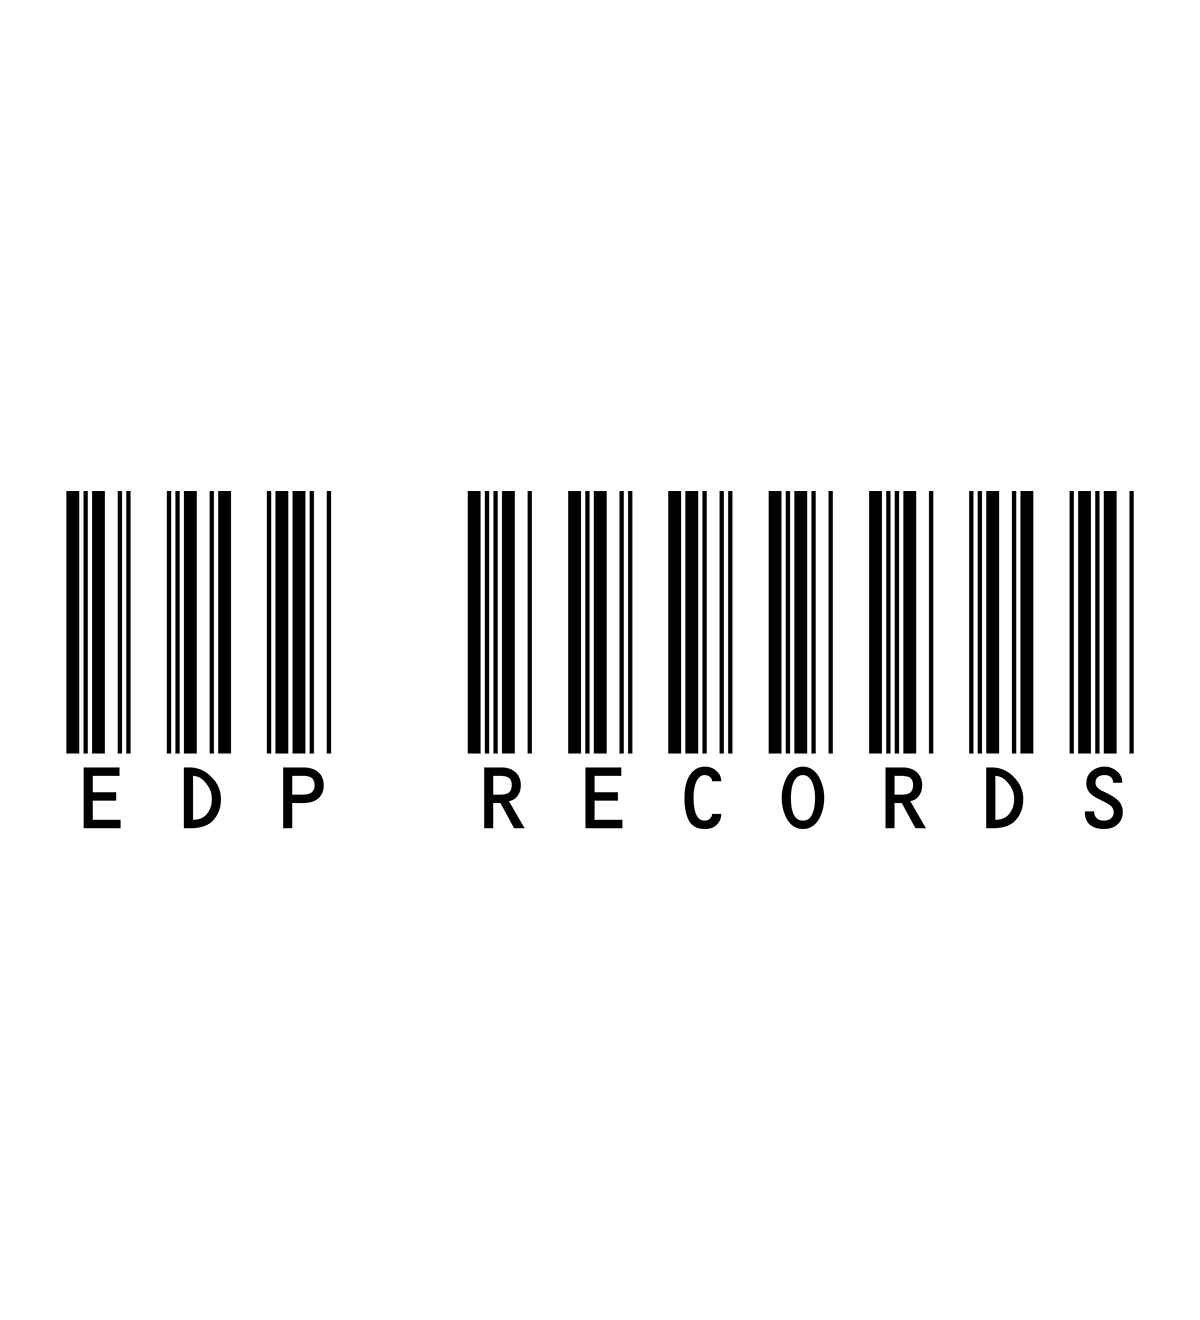 EDP Records Barcode Black